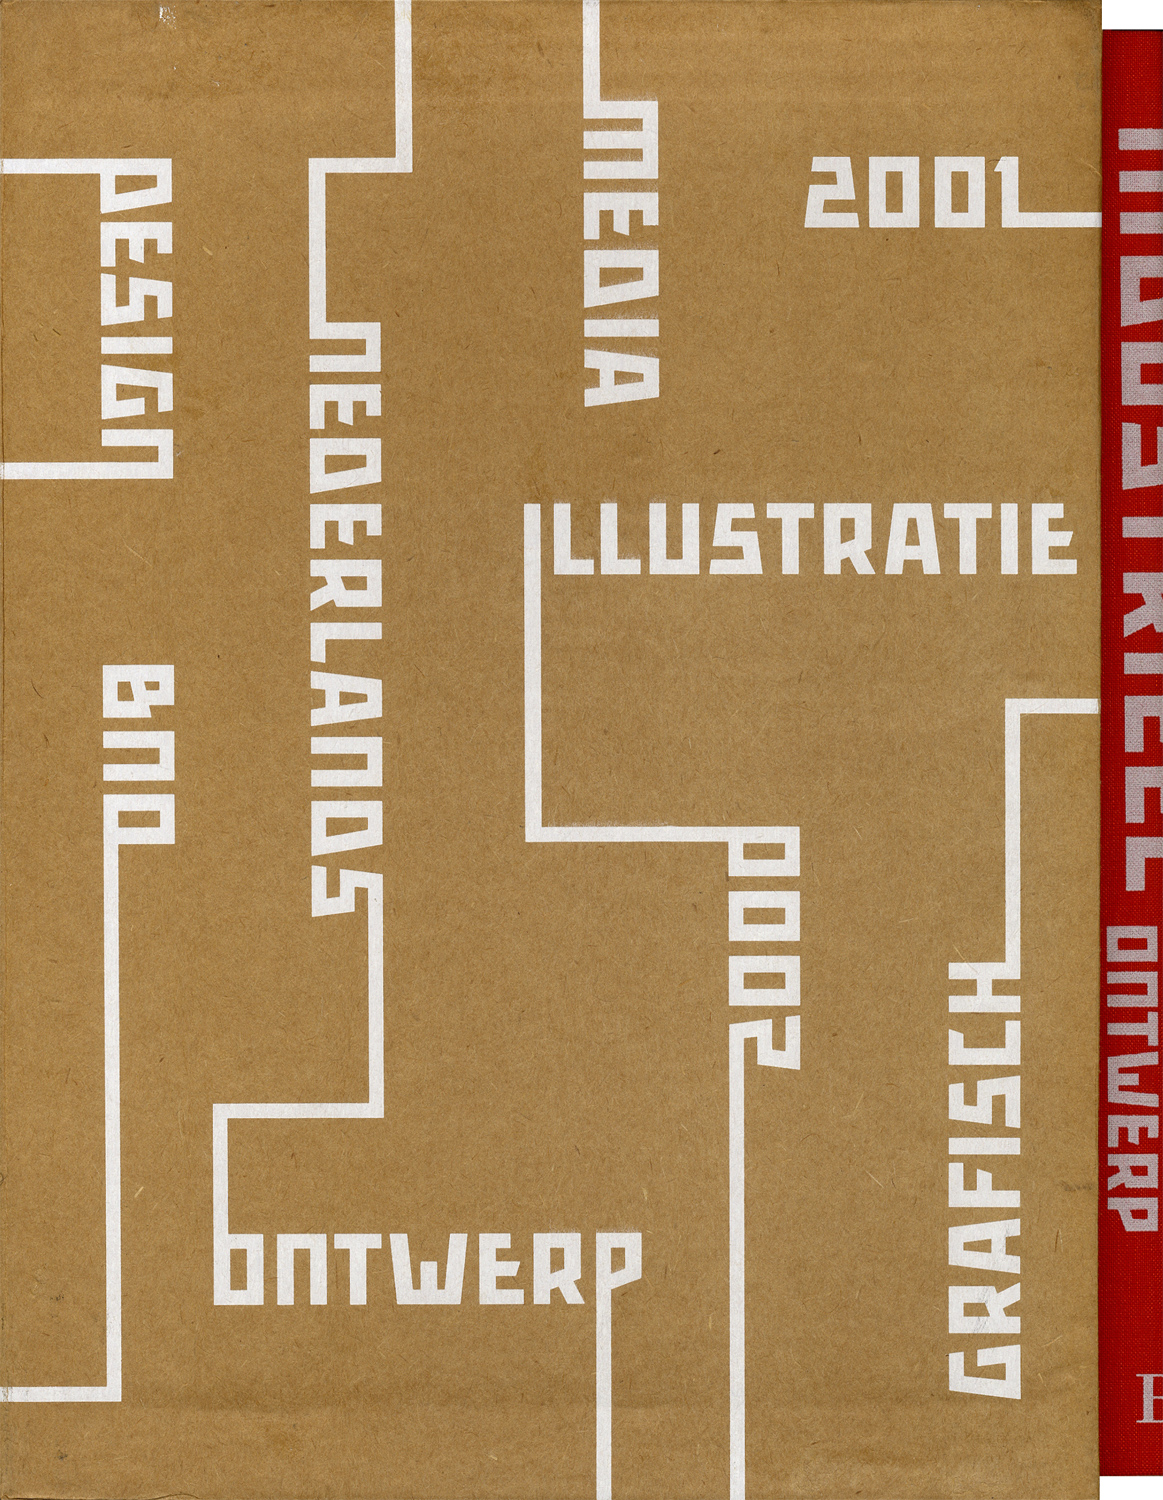 Nederlands ontwerp / Dutch Design 2000-2001 complete set